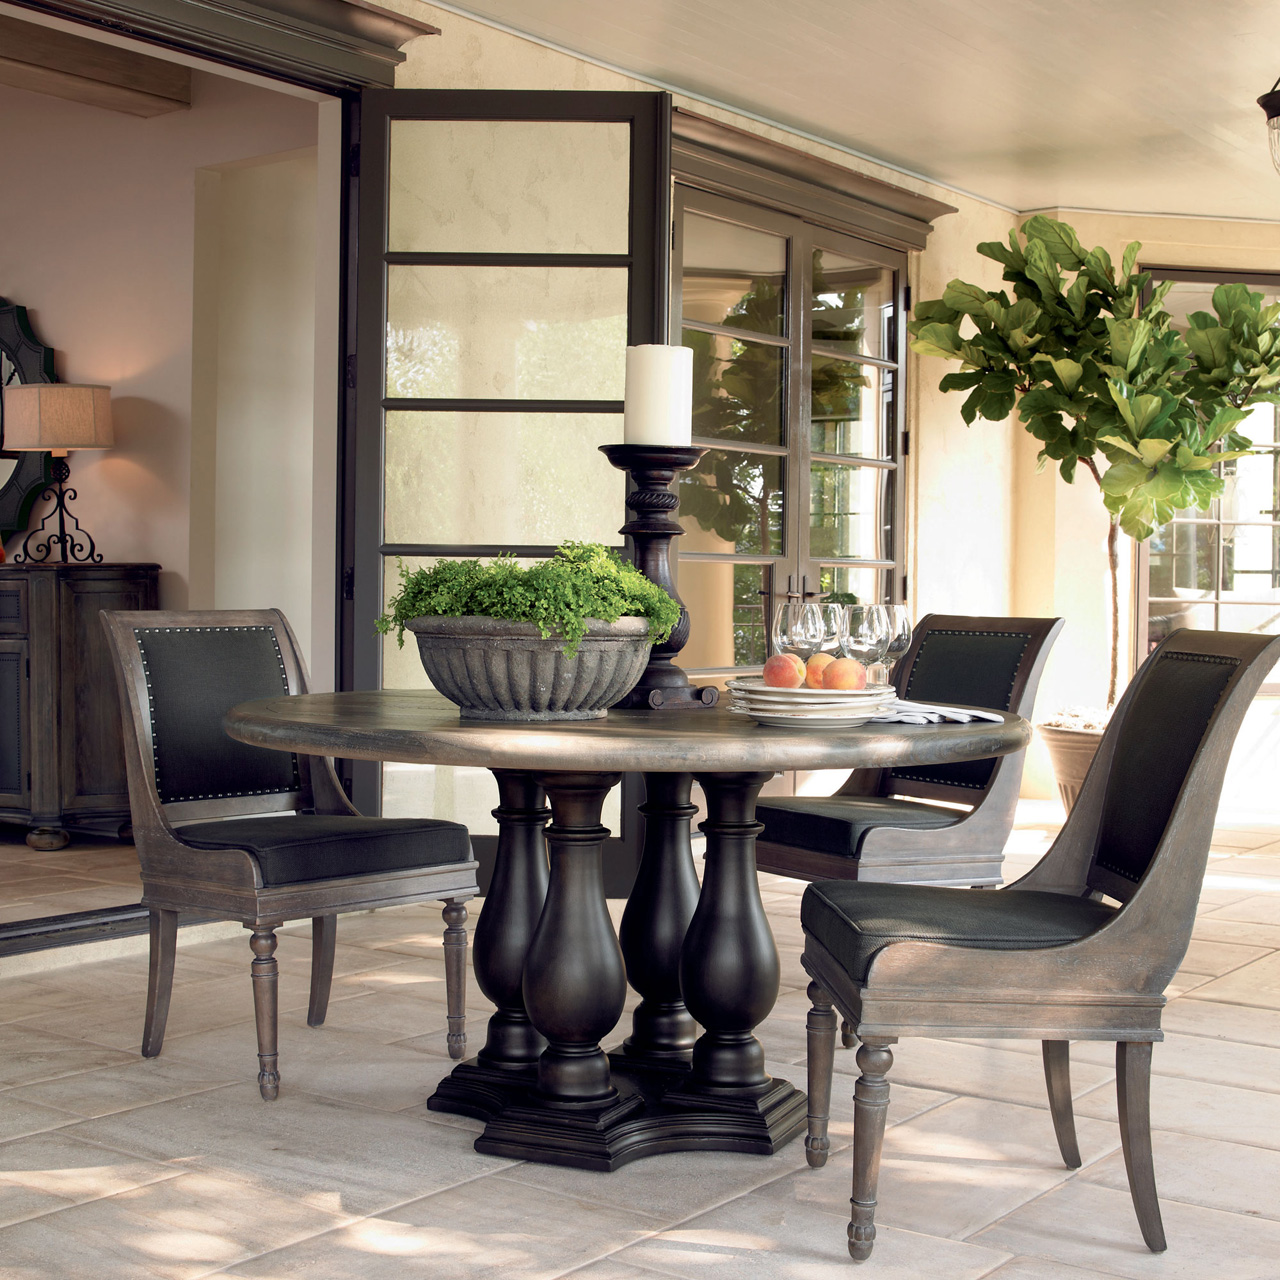 Dining Room Furniture With Bench: Dining Room Furniture